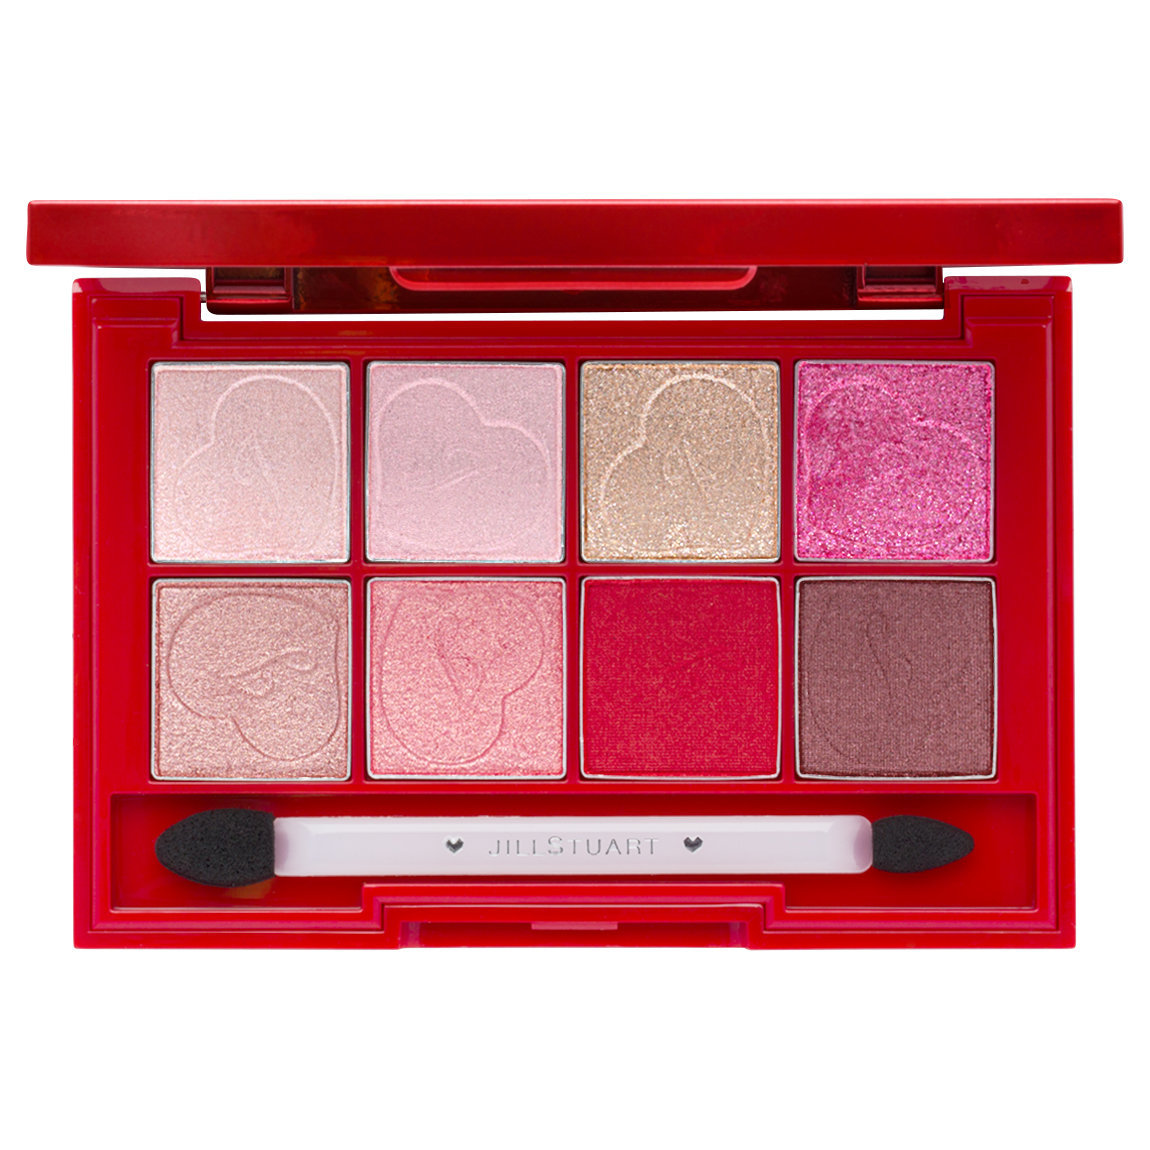 JILL STUART Beauty Galentine's Party Eyeshadow Palette product swatch.